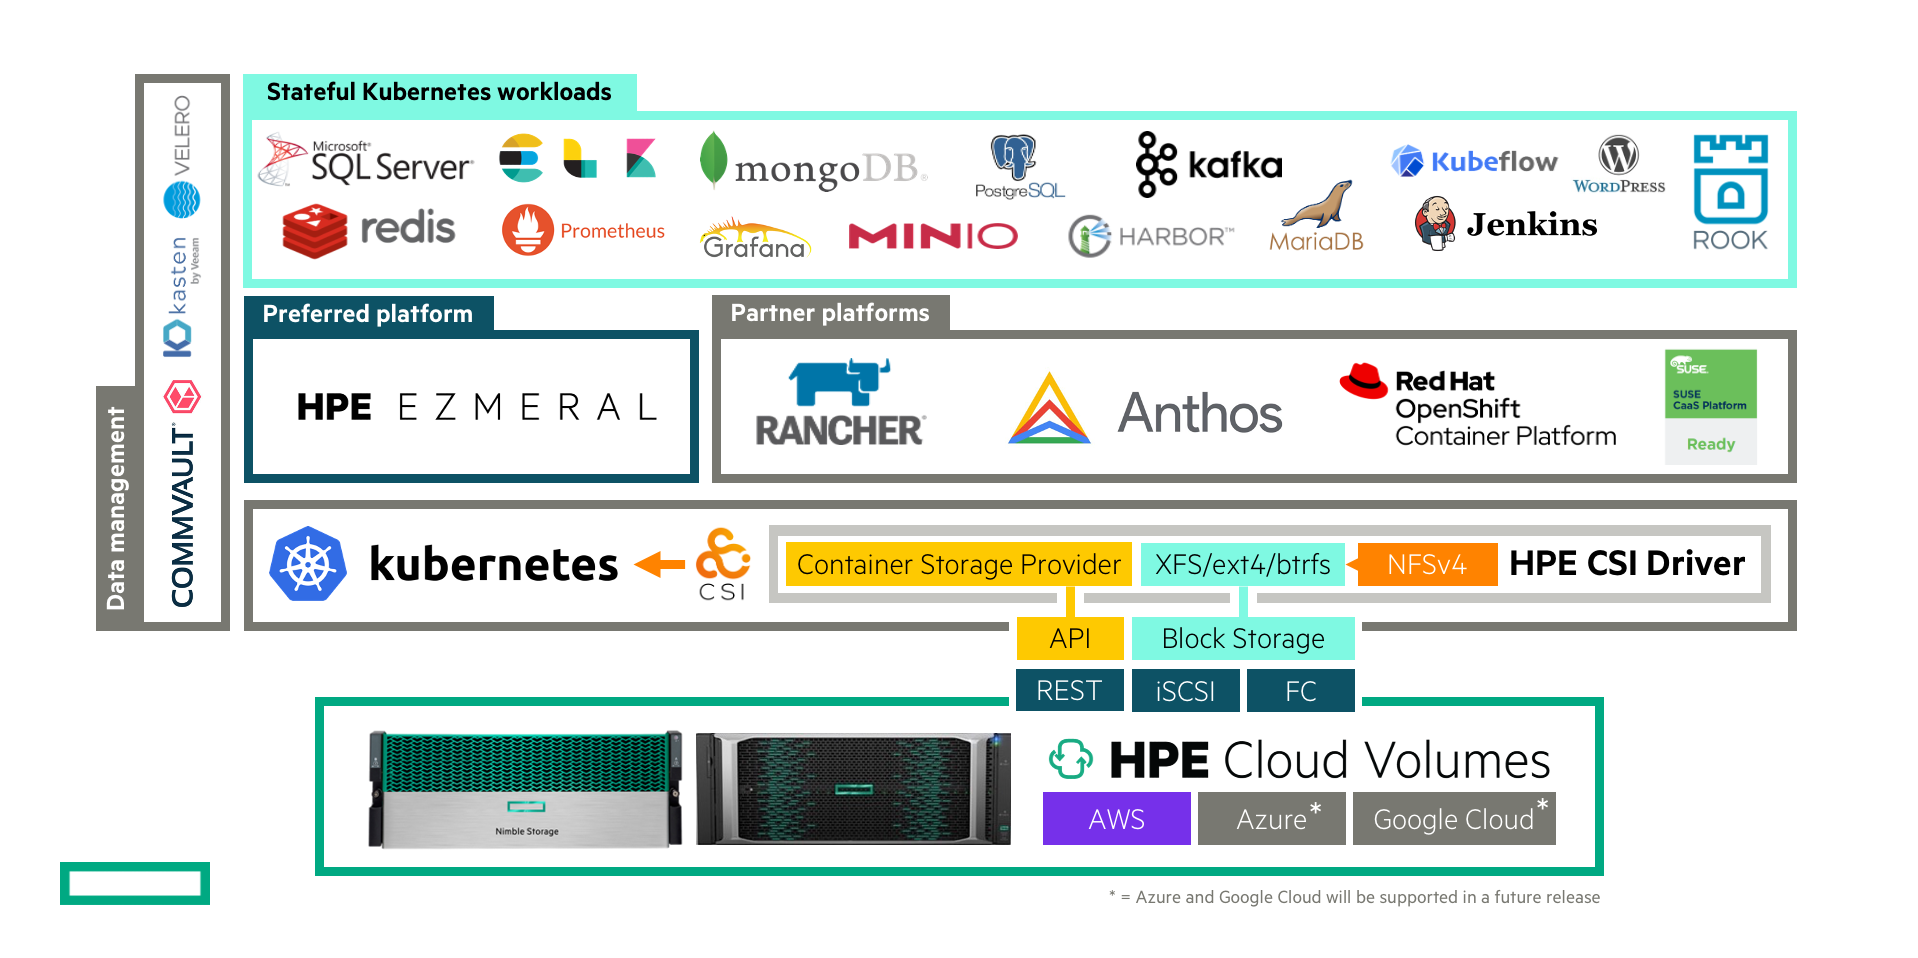 At a glance: HPE CSI Driver for Kubernetes